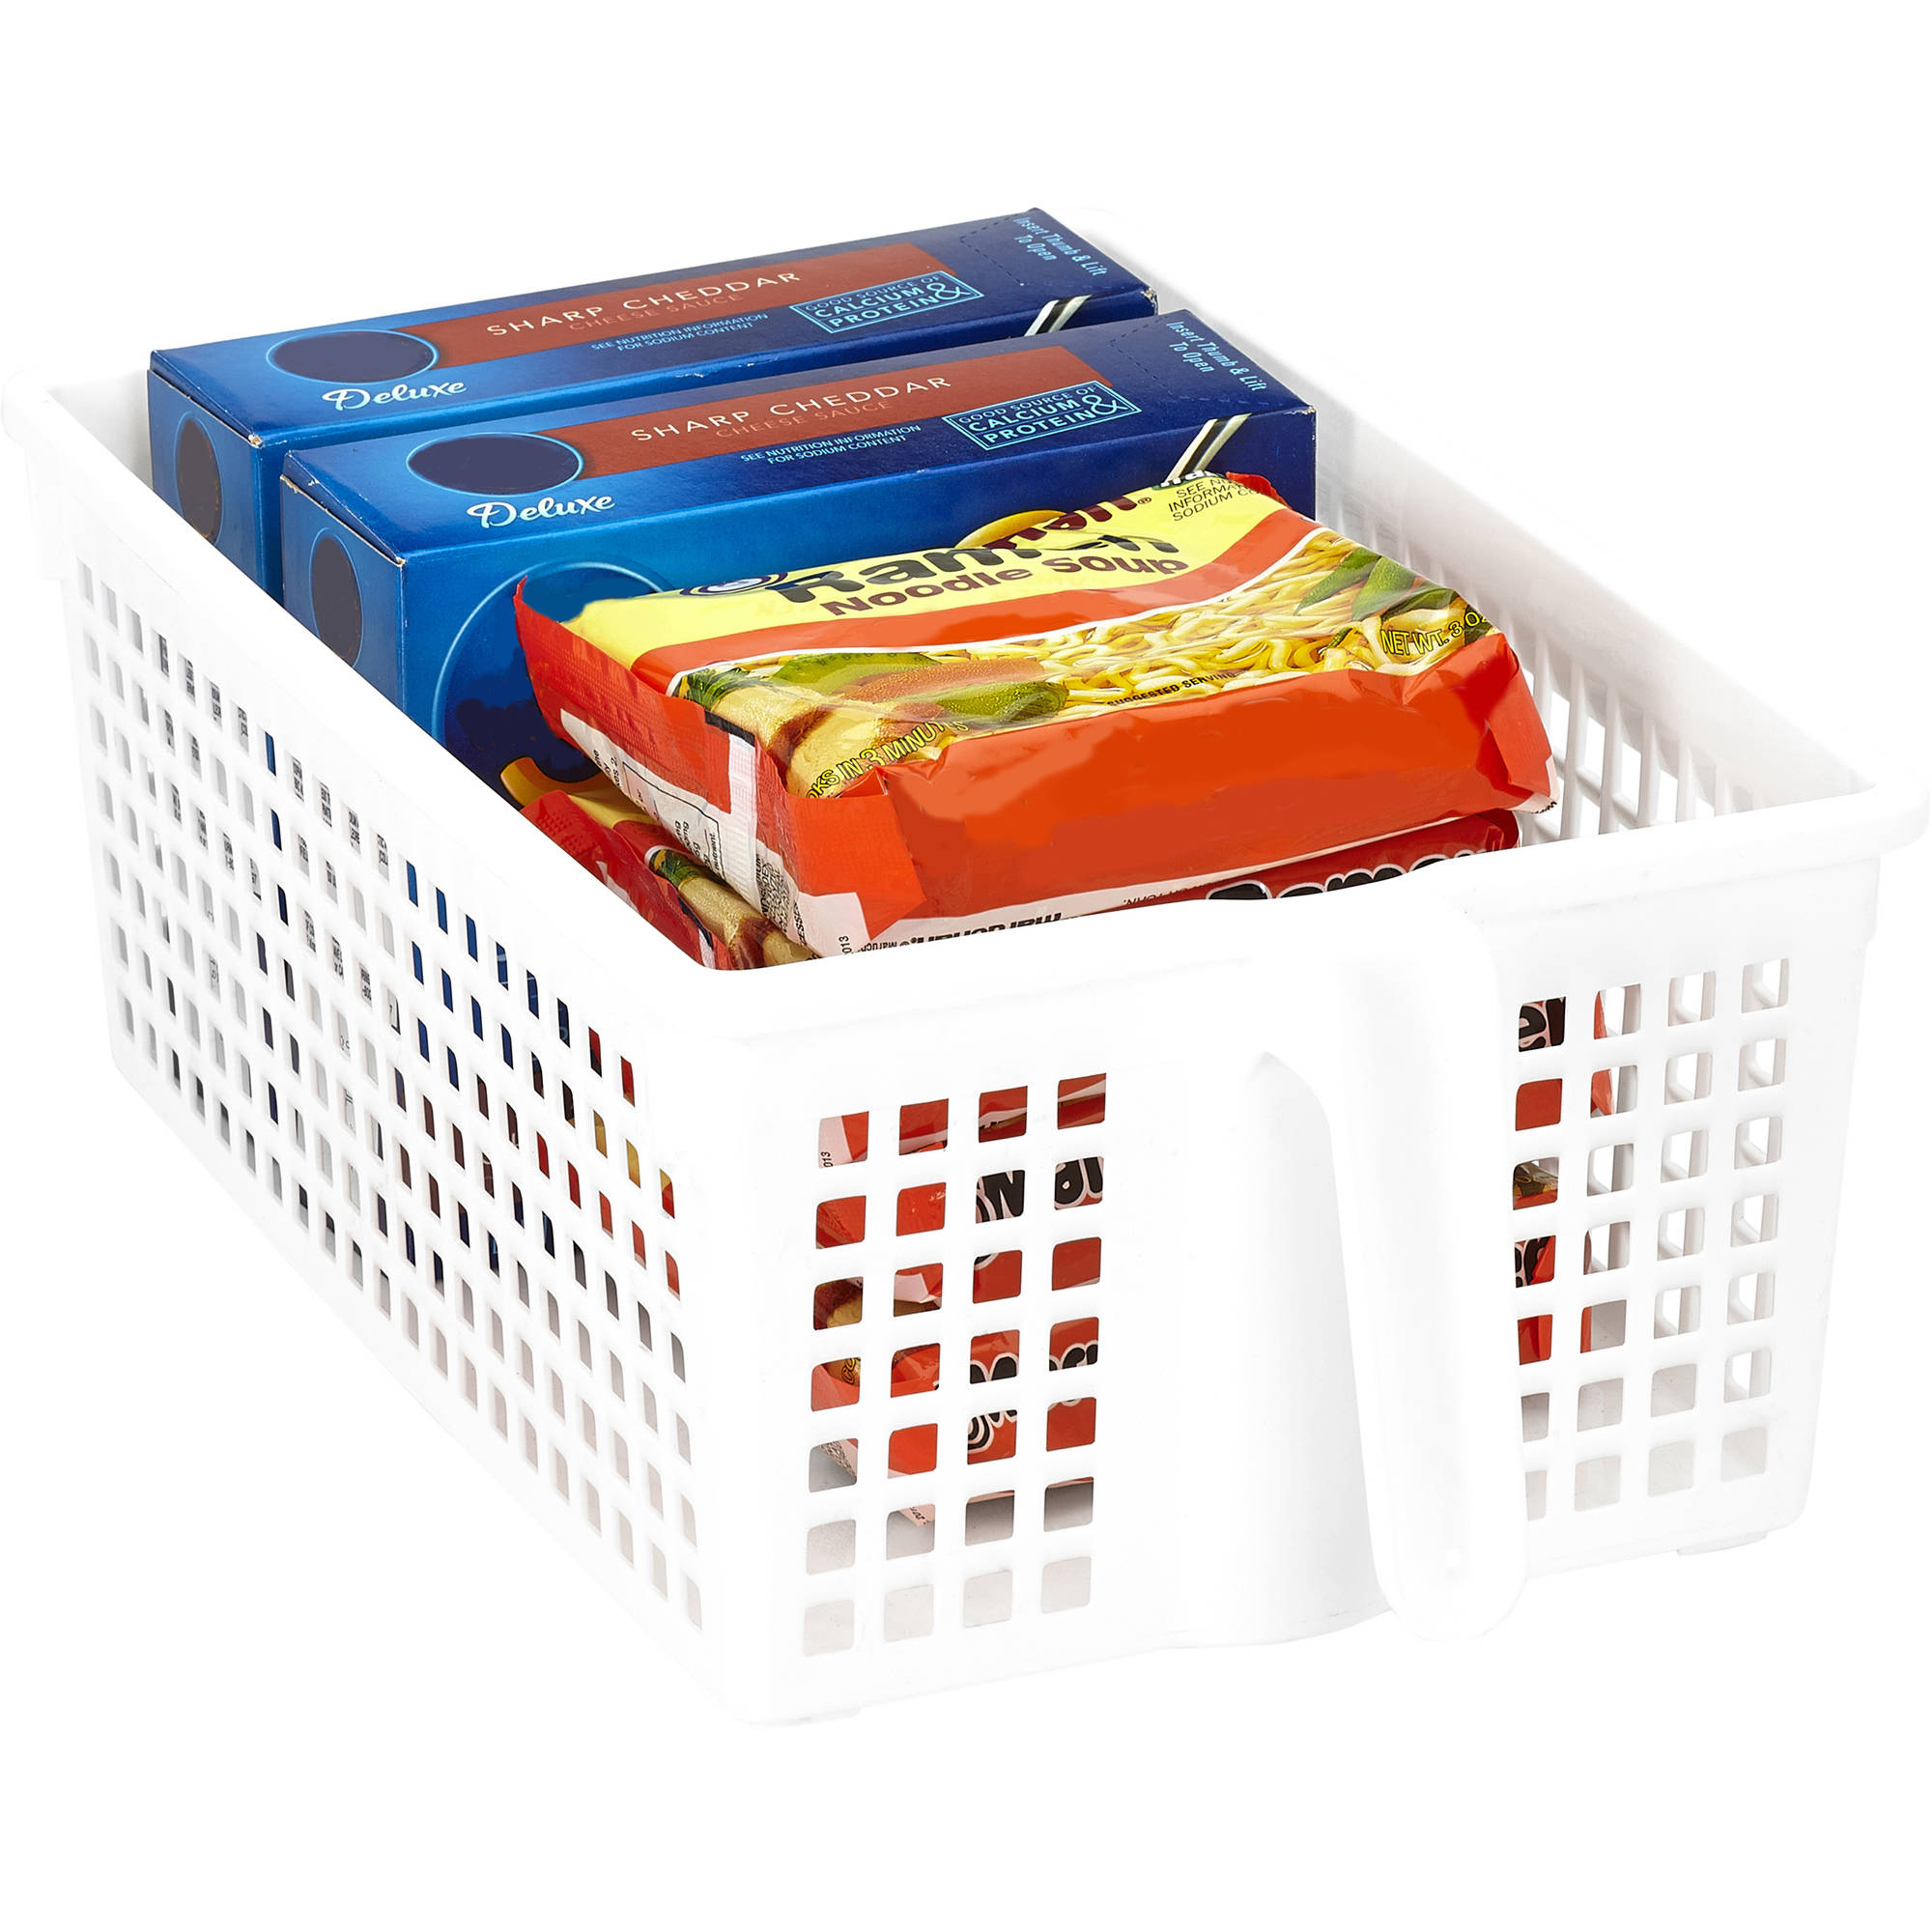 Kitchen Details Easy Pull Pantry Organizer Basket with Handle Grip, Medium